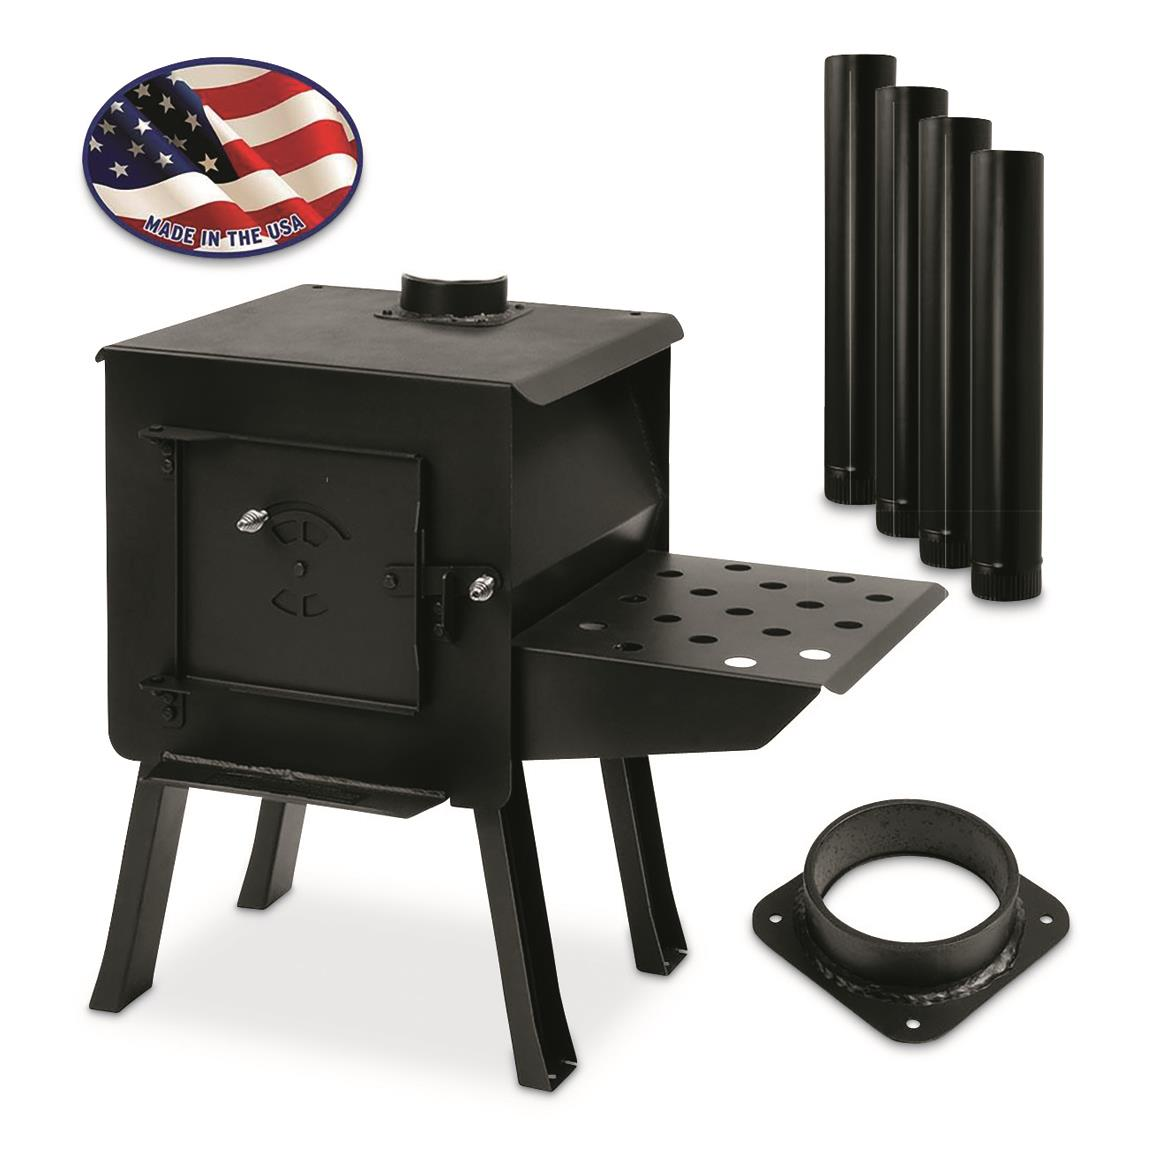 Complete Kit includes Stove, pipe collar, 8' pipe kit, and attachable shelf